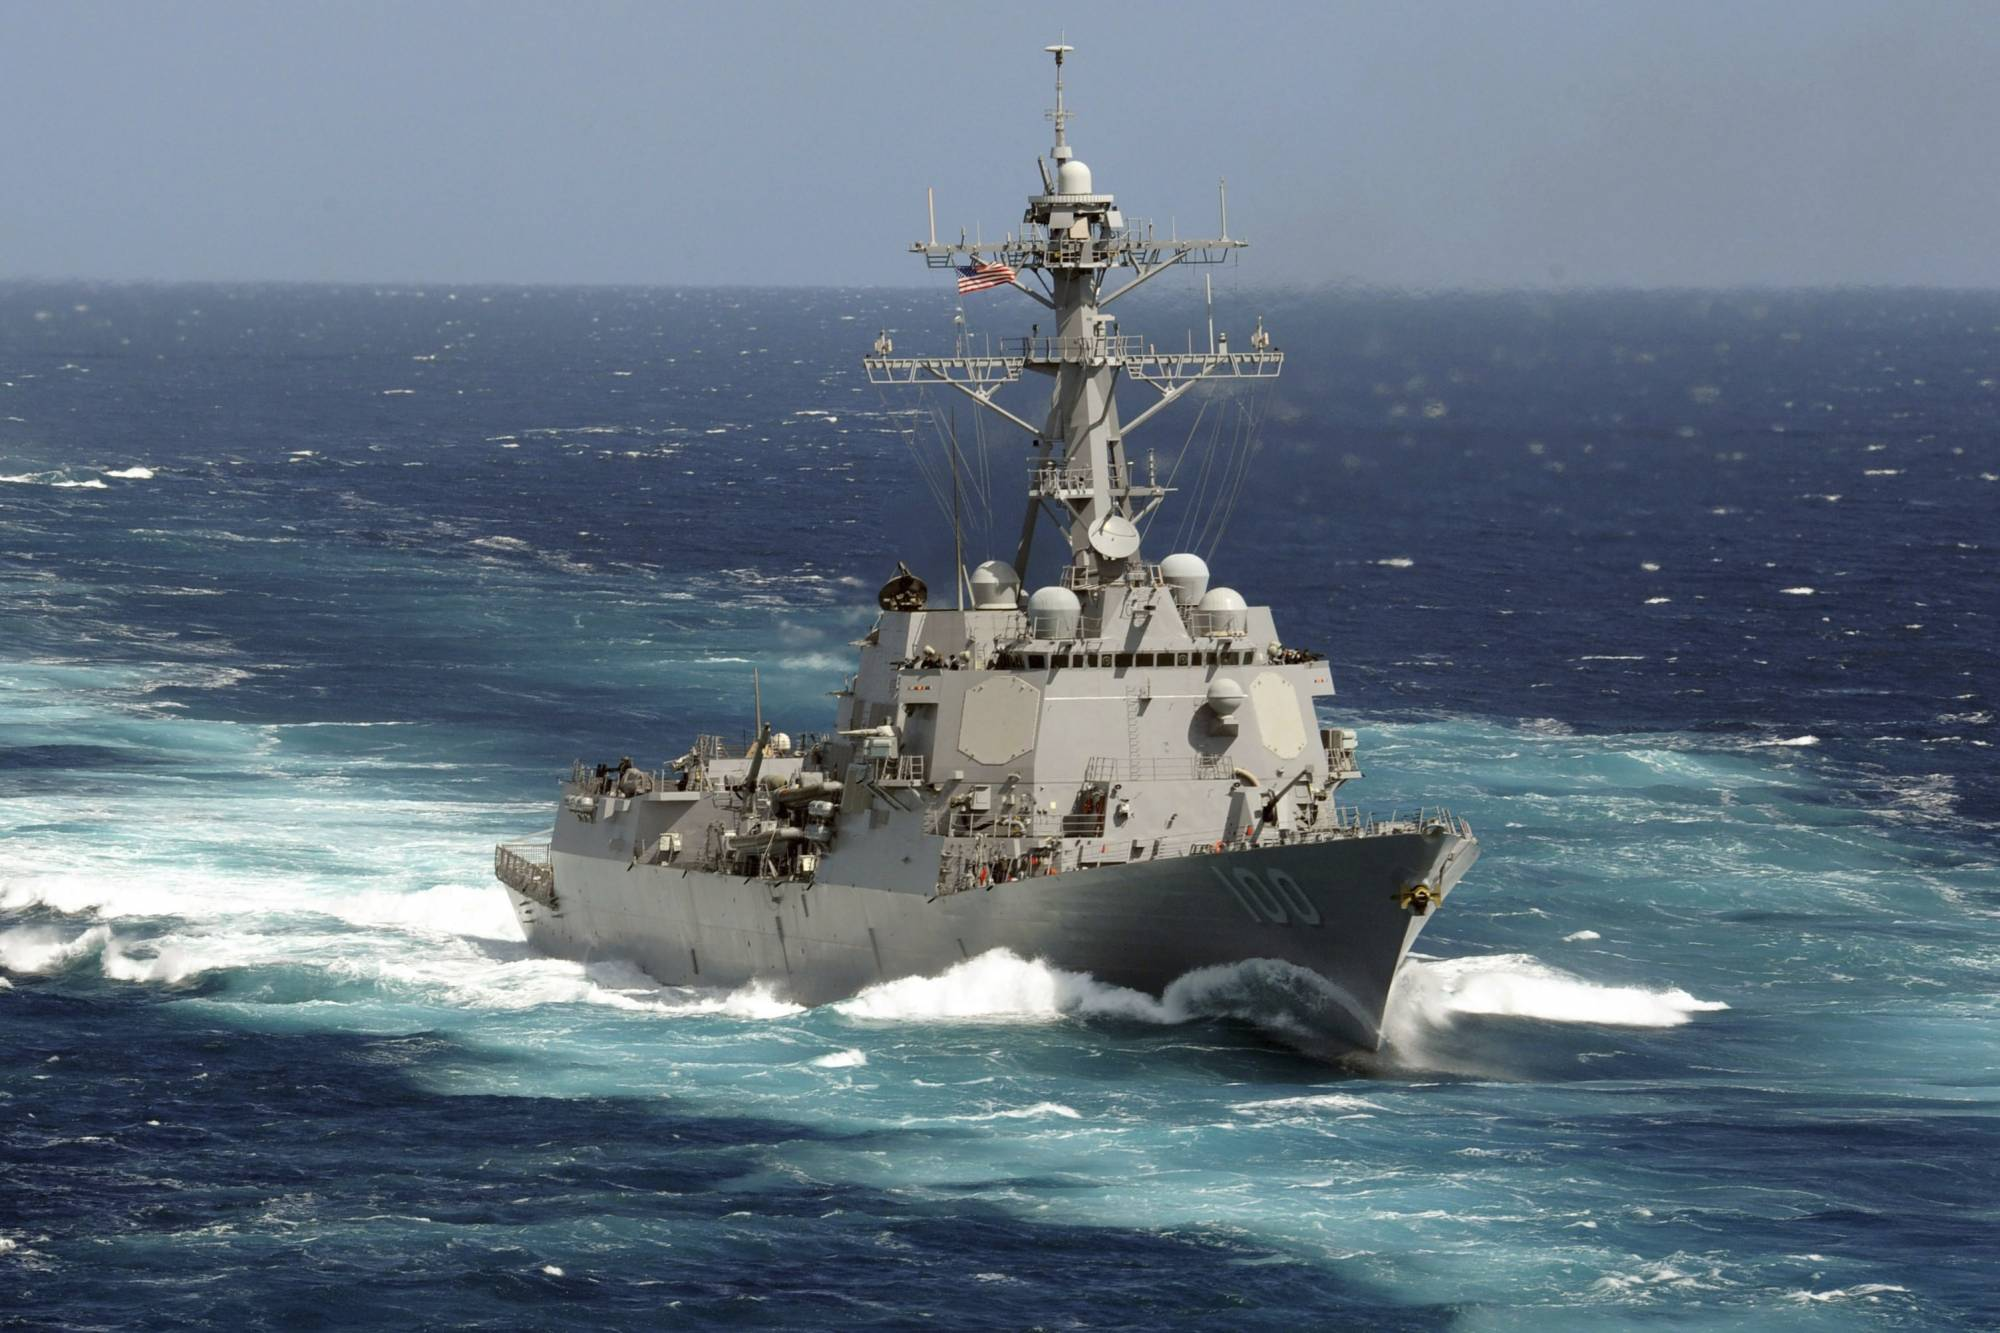 This May 18, 2011 photo made available by the U.S. Navy shows the guided-missile destroyer USS Kidd in the Pacific Ocean. On Saturday, April 26, 2020, the Navy said the number of sailors aboard the ship confirmed to be infected with the COVID-19 coronavirus has nearly doubled, rising from 18 to 33. (Mass Communication Specialist Seaman Apprentice Carla Ocampo/U.S. Navy via AP)